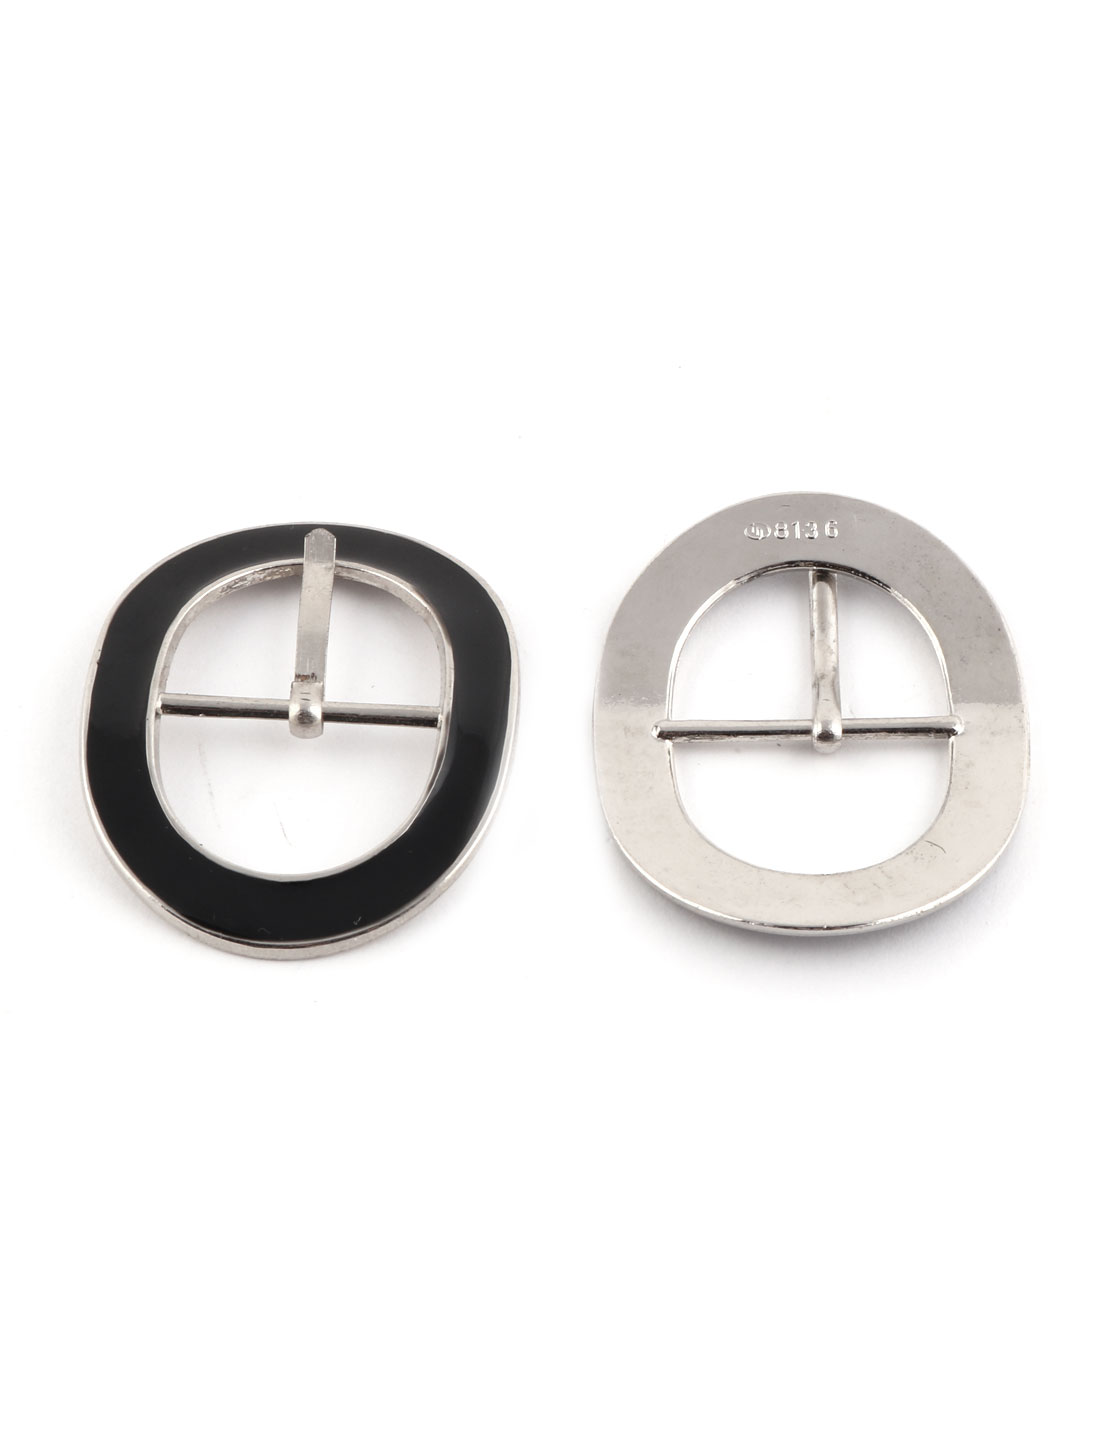 Unisex Ellipse Shaped Metal Leather Shoes Ornament Component Needle Buckles Pair